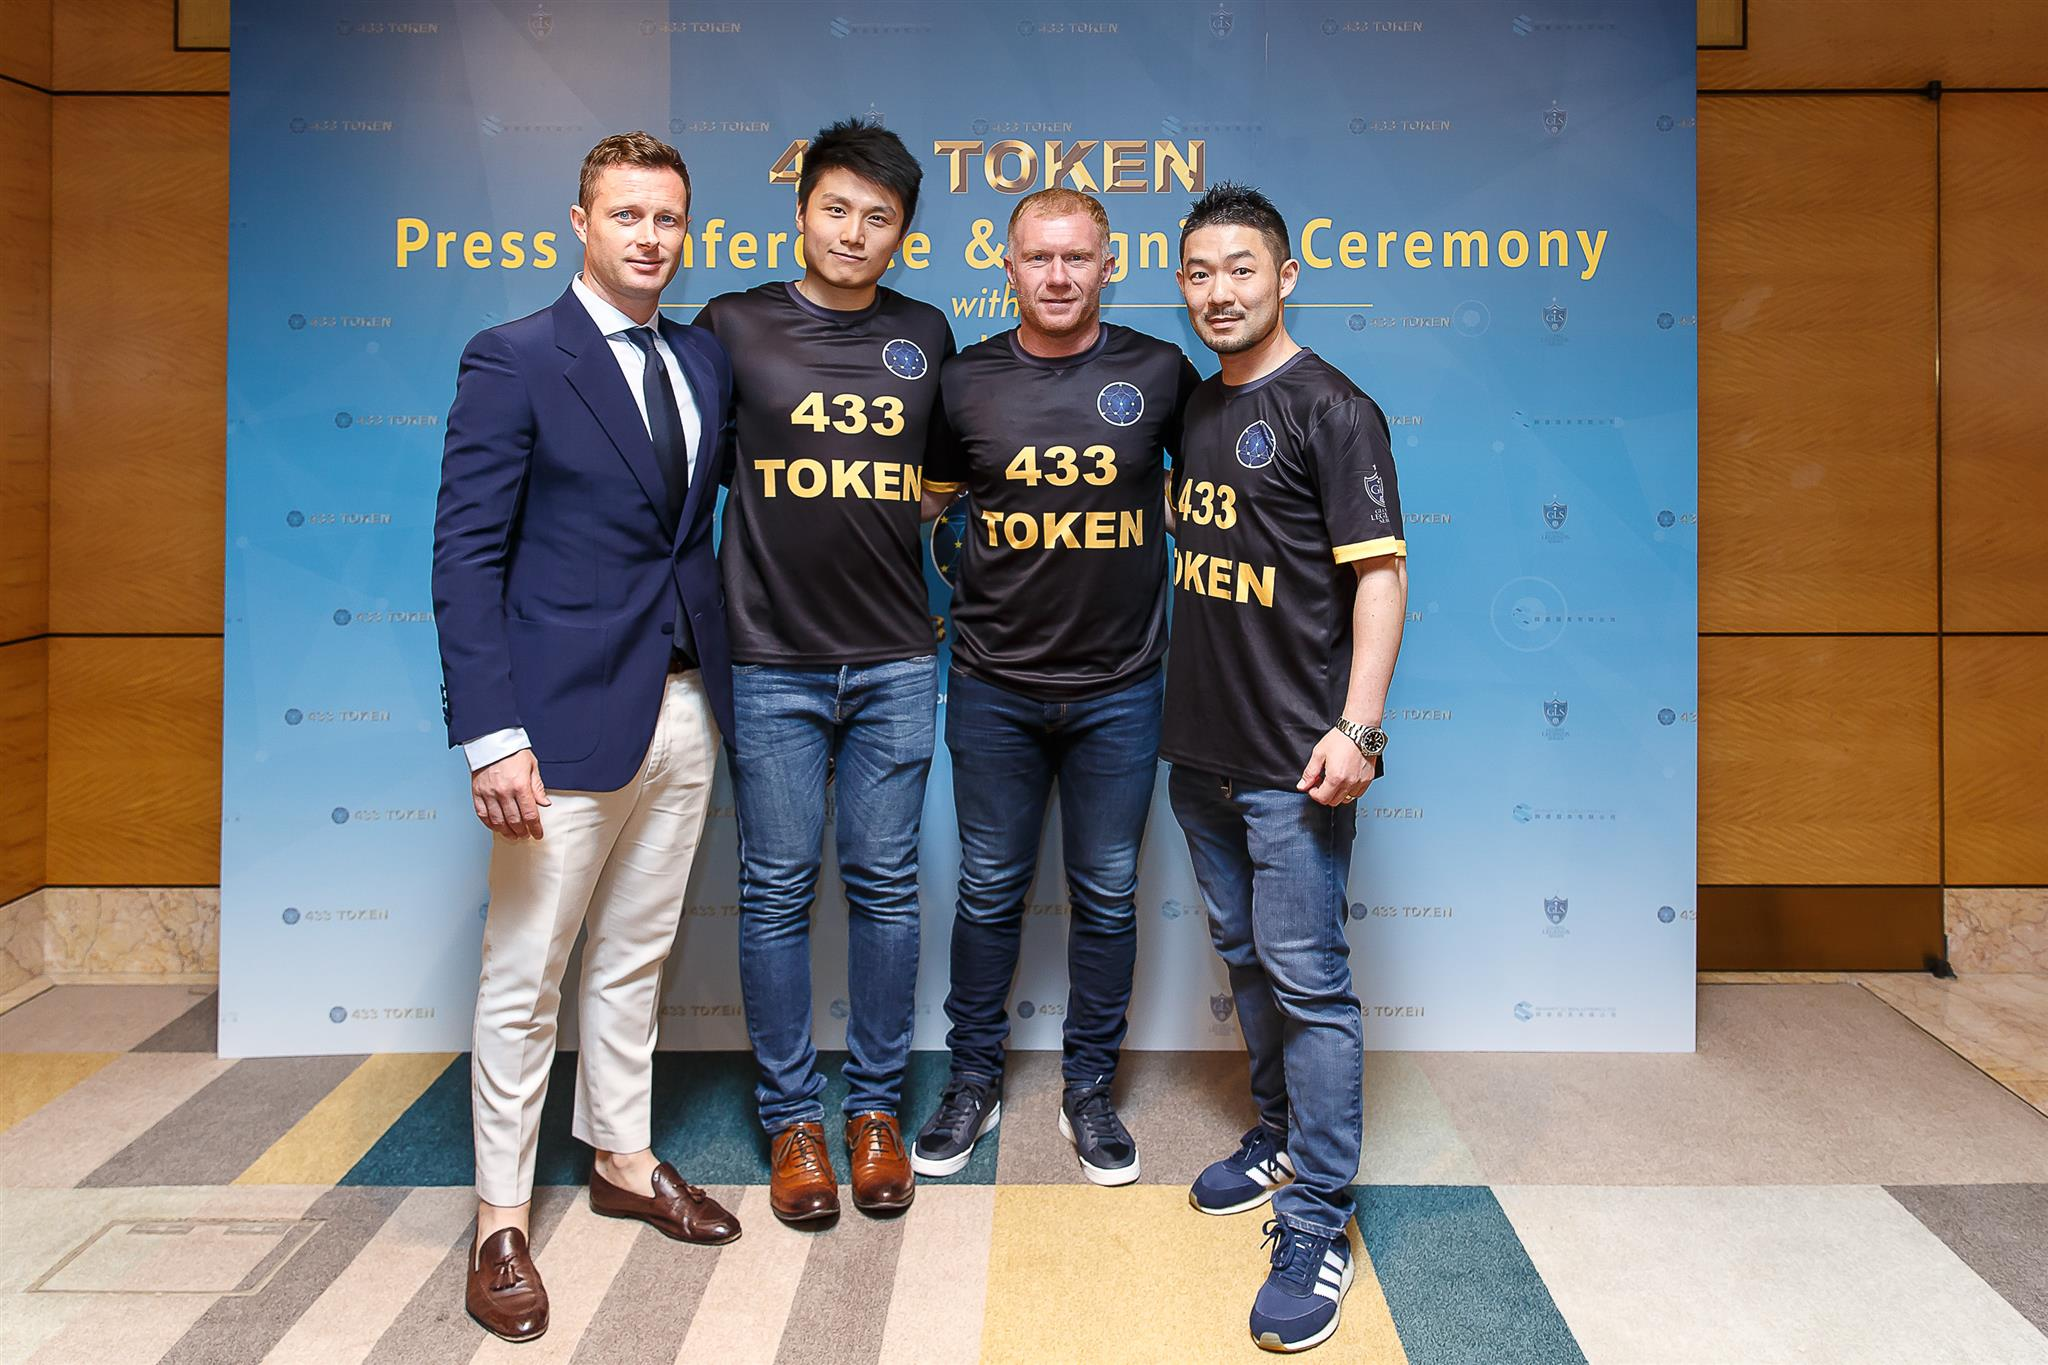 posing in 433 jerseys from left to right James Yandle Jason Sze Paul Scholes Raymond Wong 001 - Soccer Legends Limited Revolutionizes The Soccer Fanbase All Over The World Via The 433 Token And The Blockchain Technology